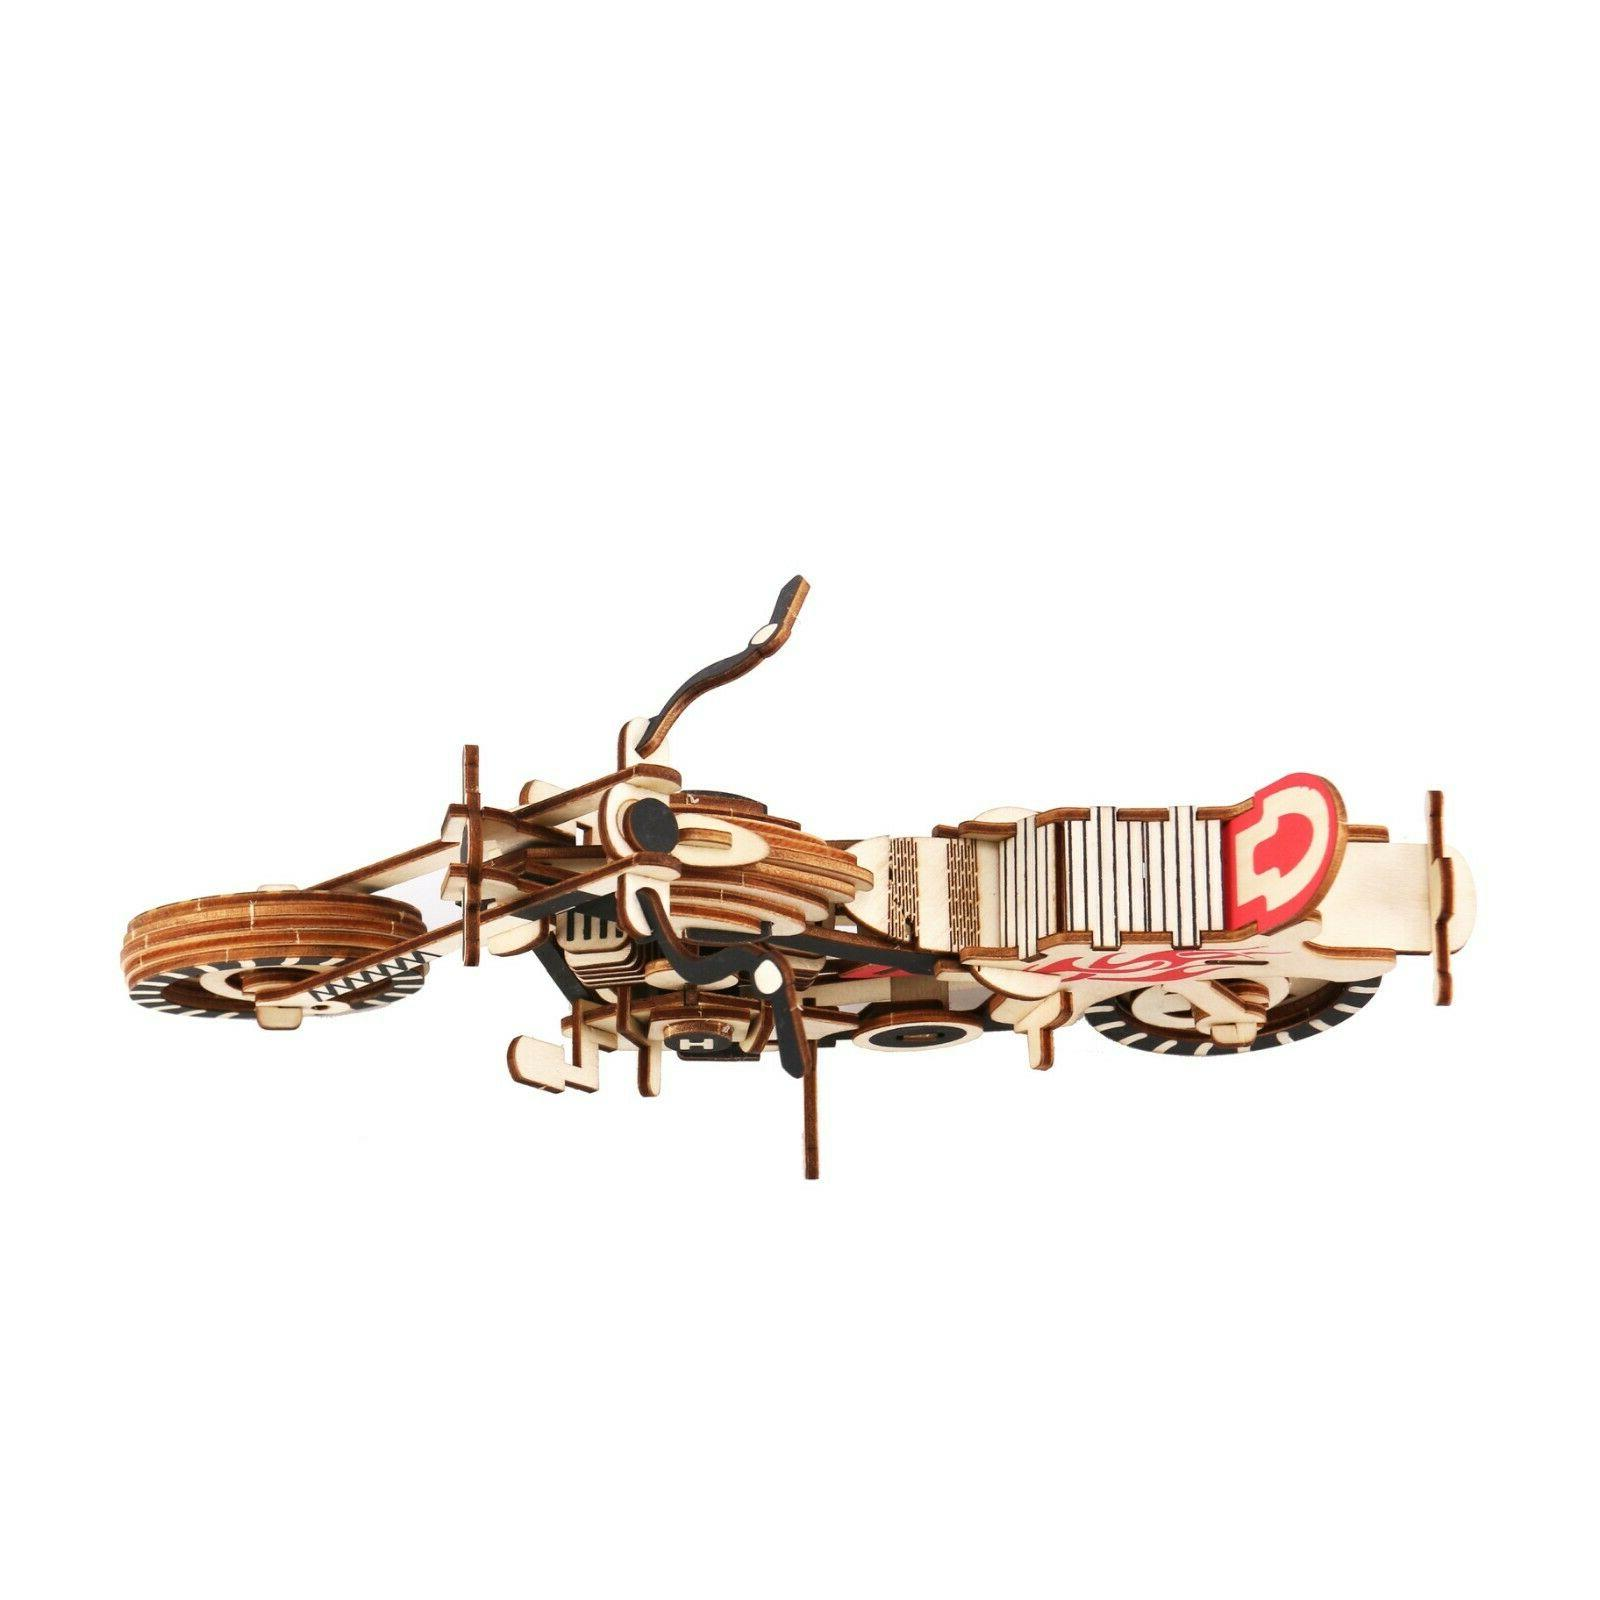 3D Wooden Puzzle Motorcycle Model Great &